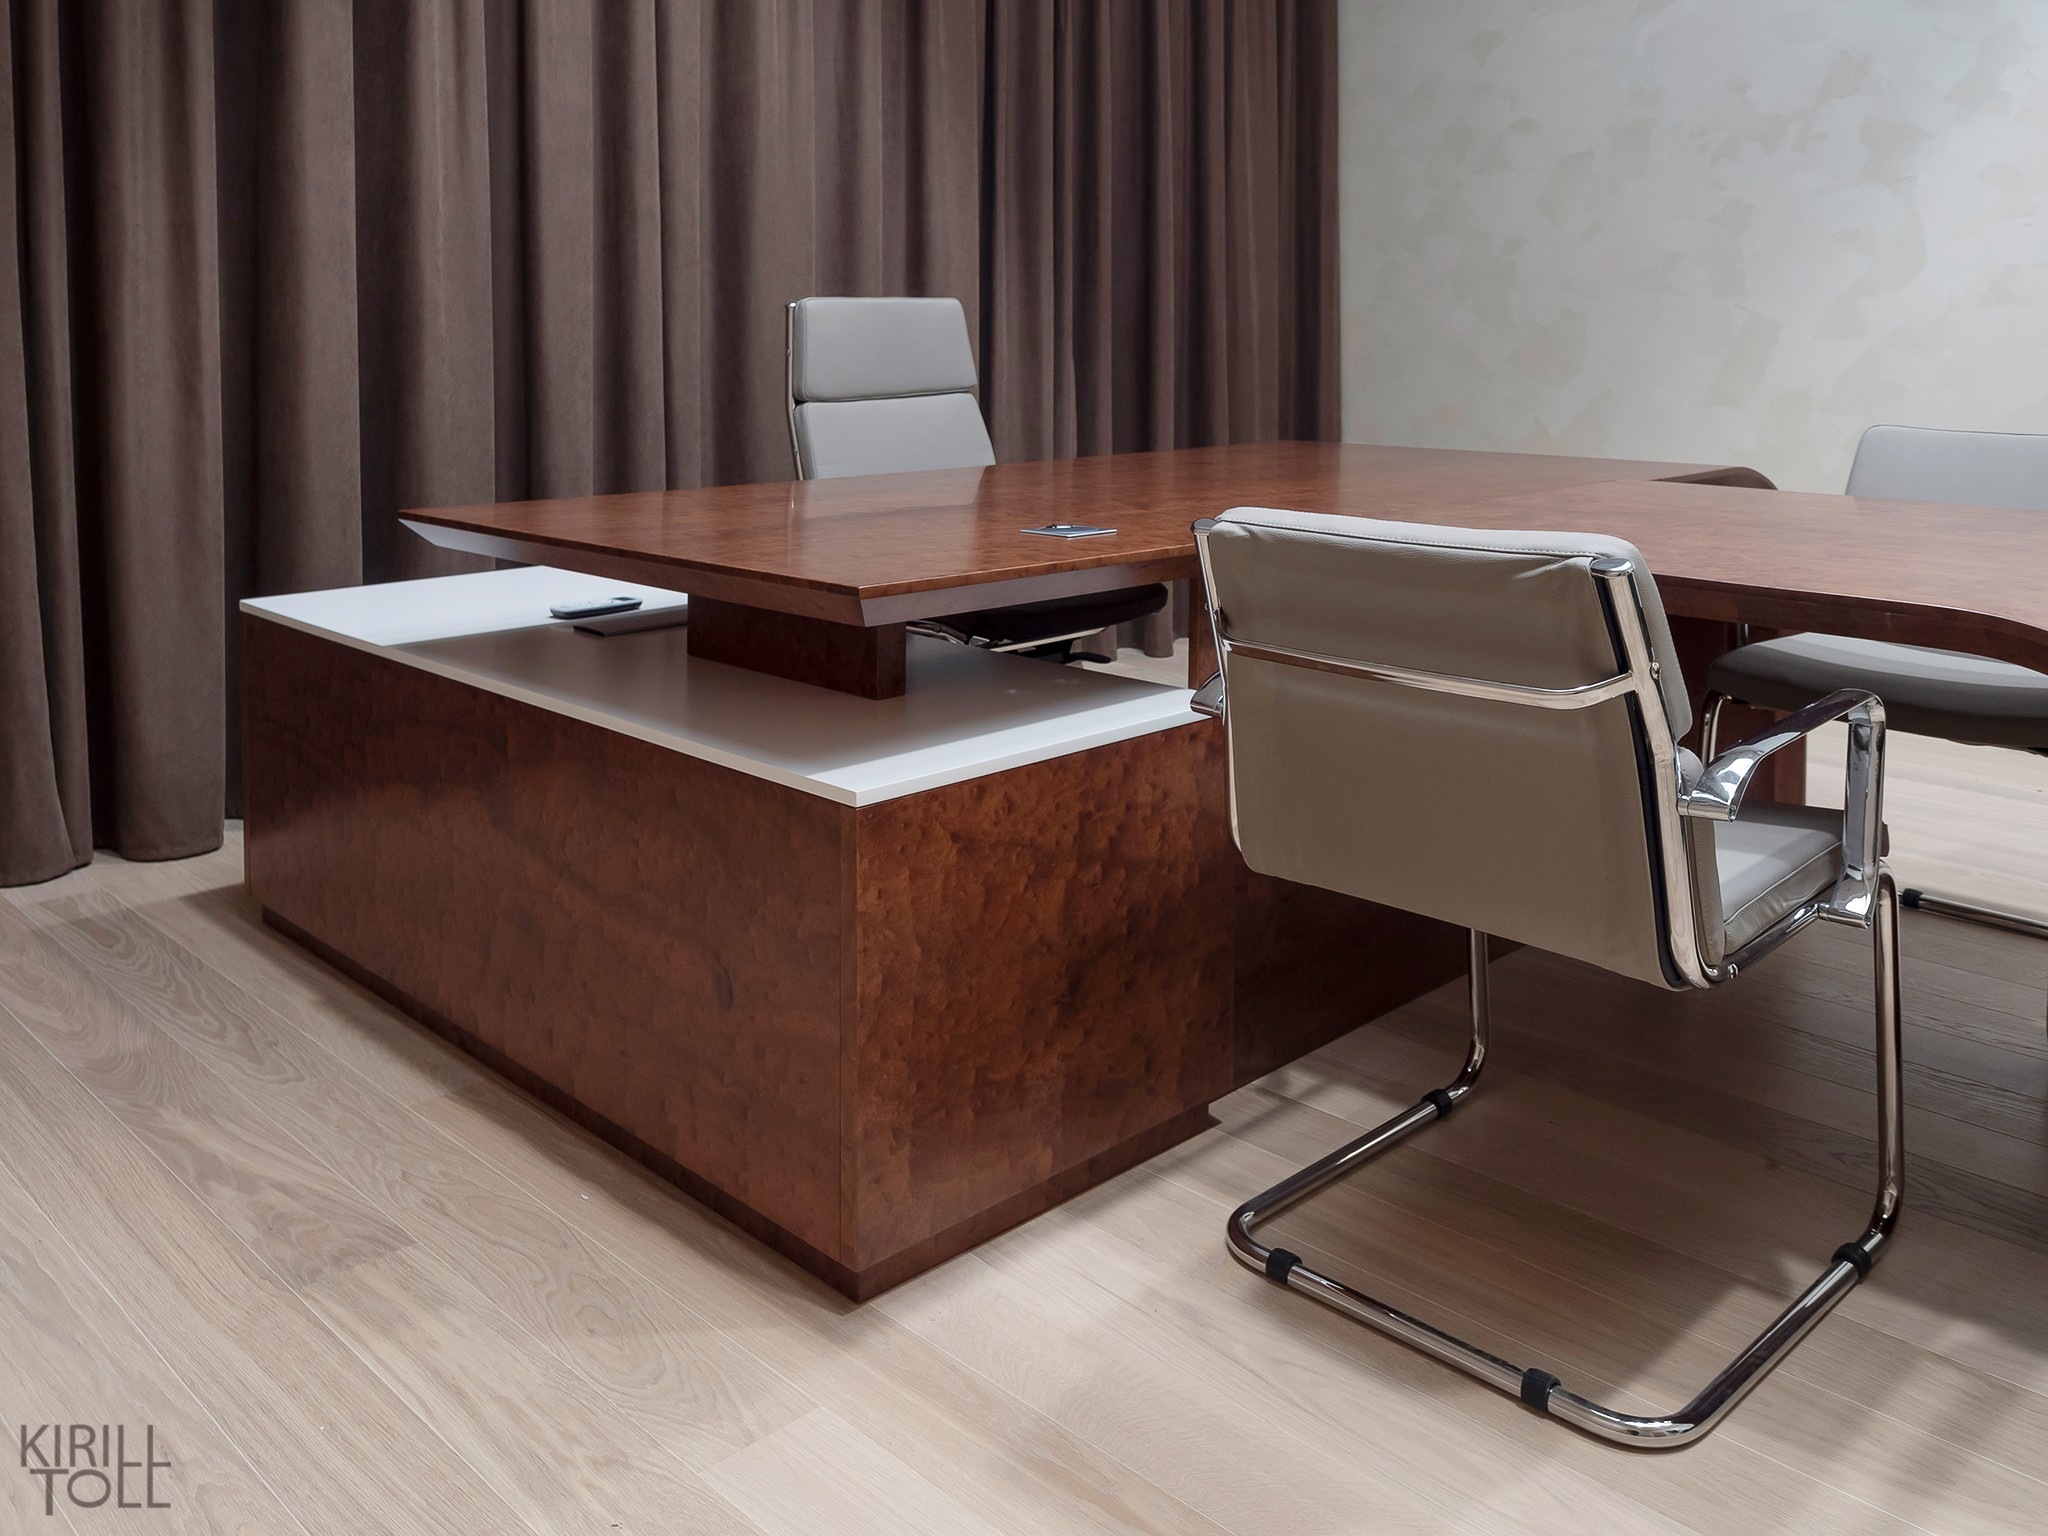 Pictures of office furniture. Office interior photography